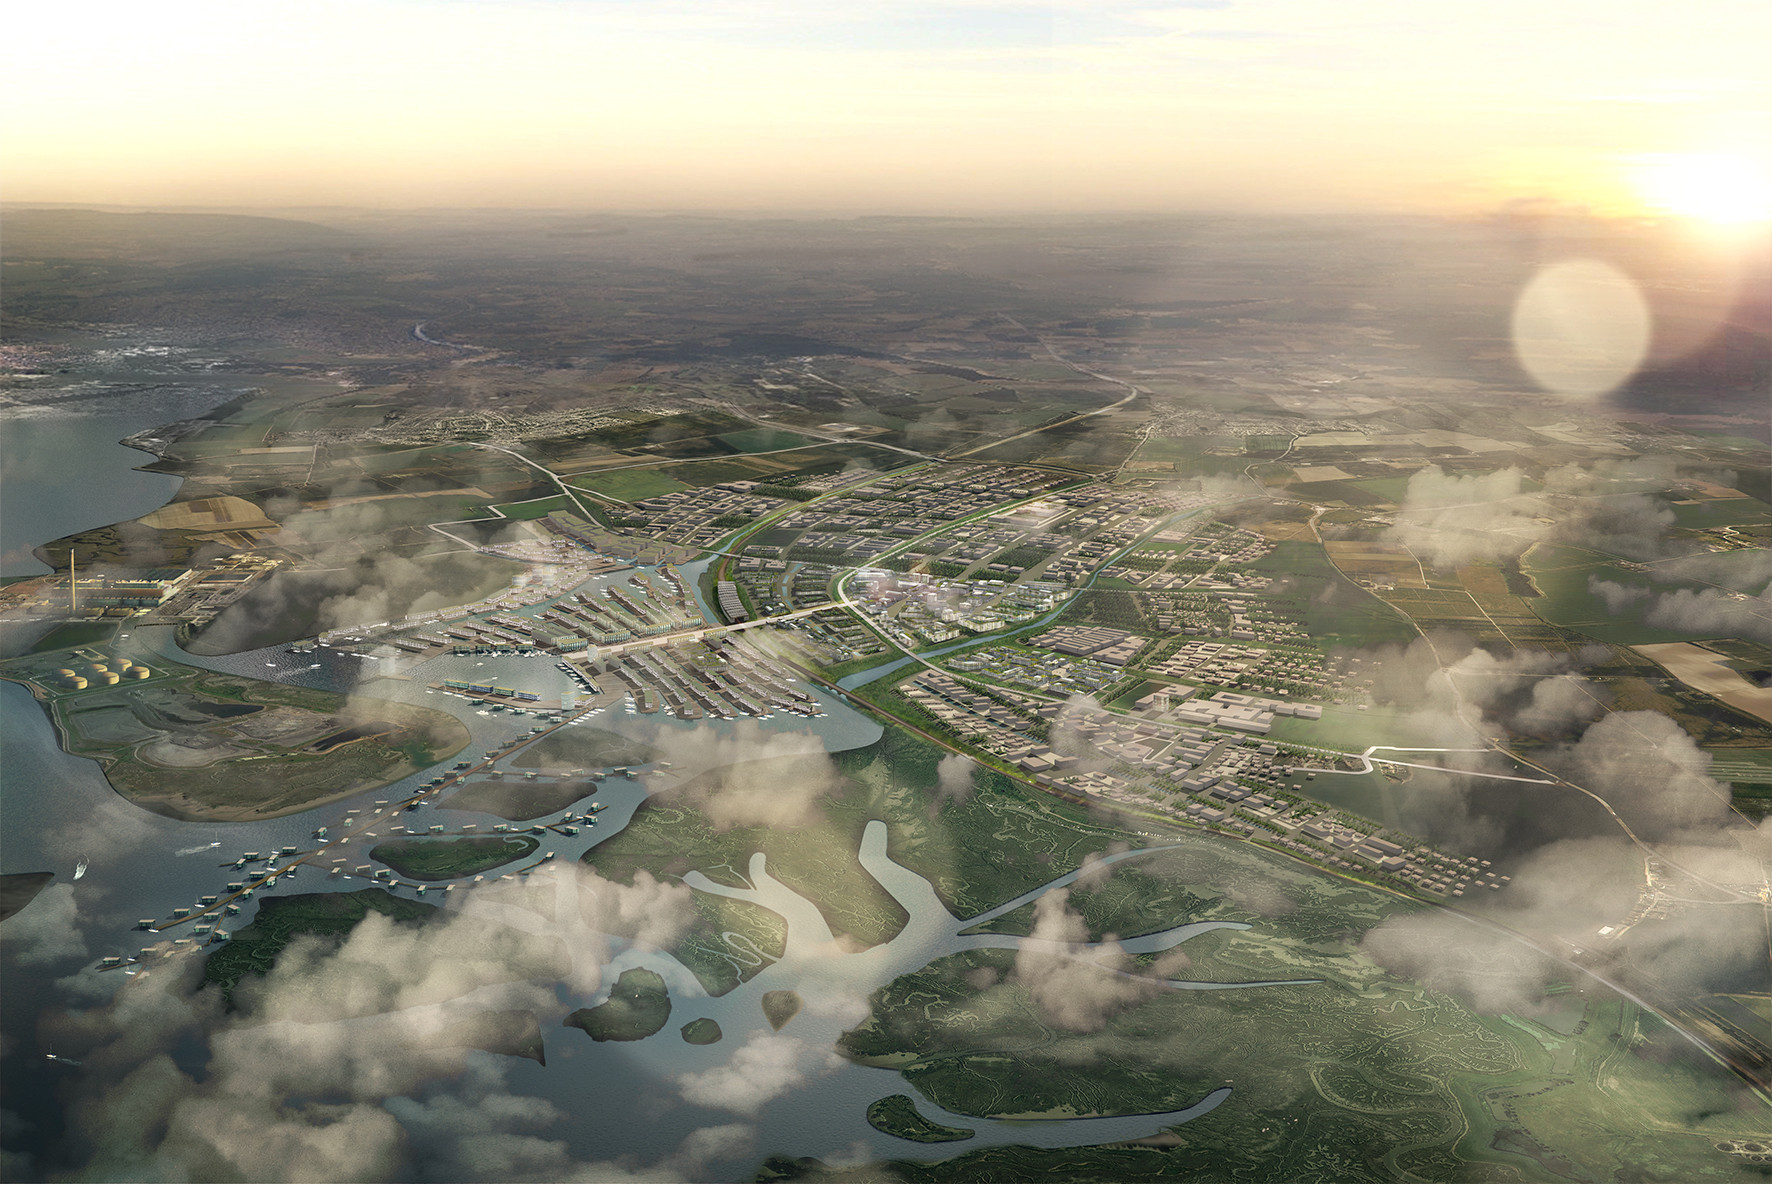 5 Concepts for Garden Cities Shortlisted for the 2014 Wolfson Economics Prize, Aerial view of Shelter's Masterplan for the Hoo Valley. Image Courtesy of Wolfson Economics Prize